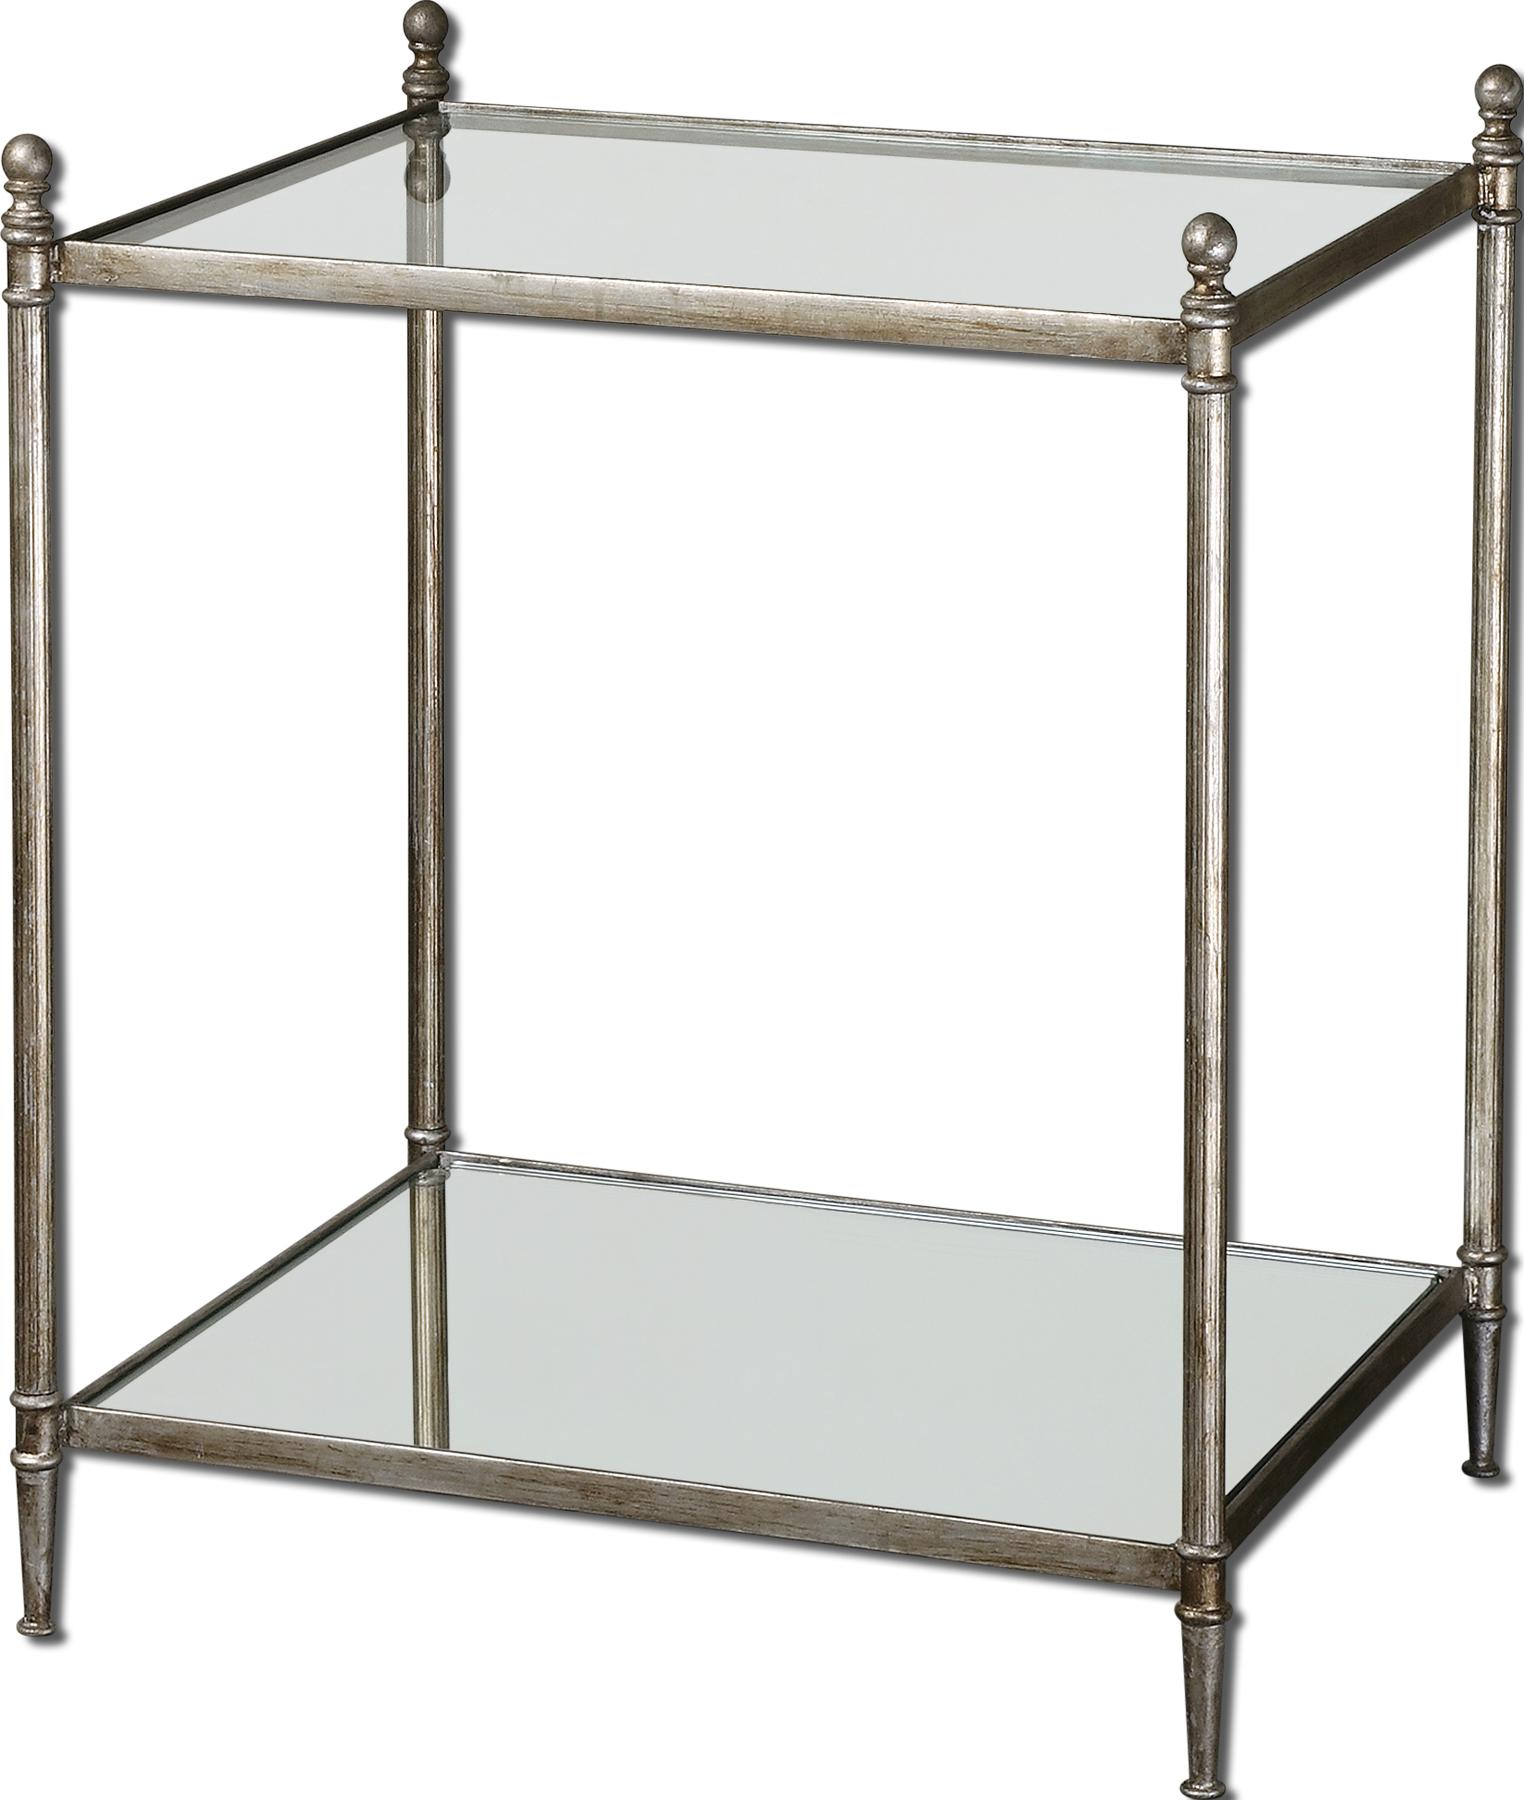 Accent Furniture - Occasional Tables Gannon End Table by Uttermost at O'Dunk & O'Bright Furniture